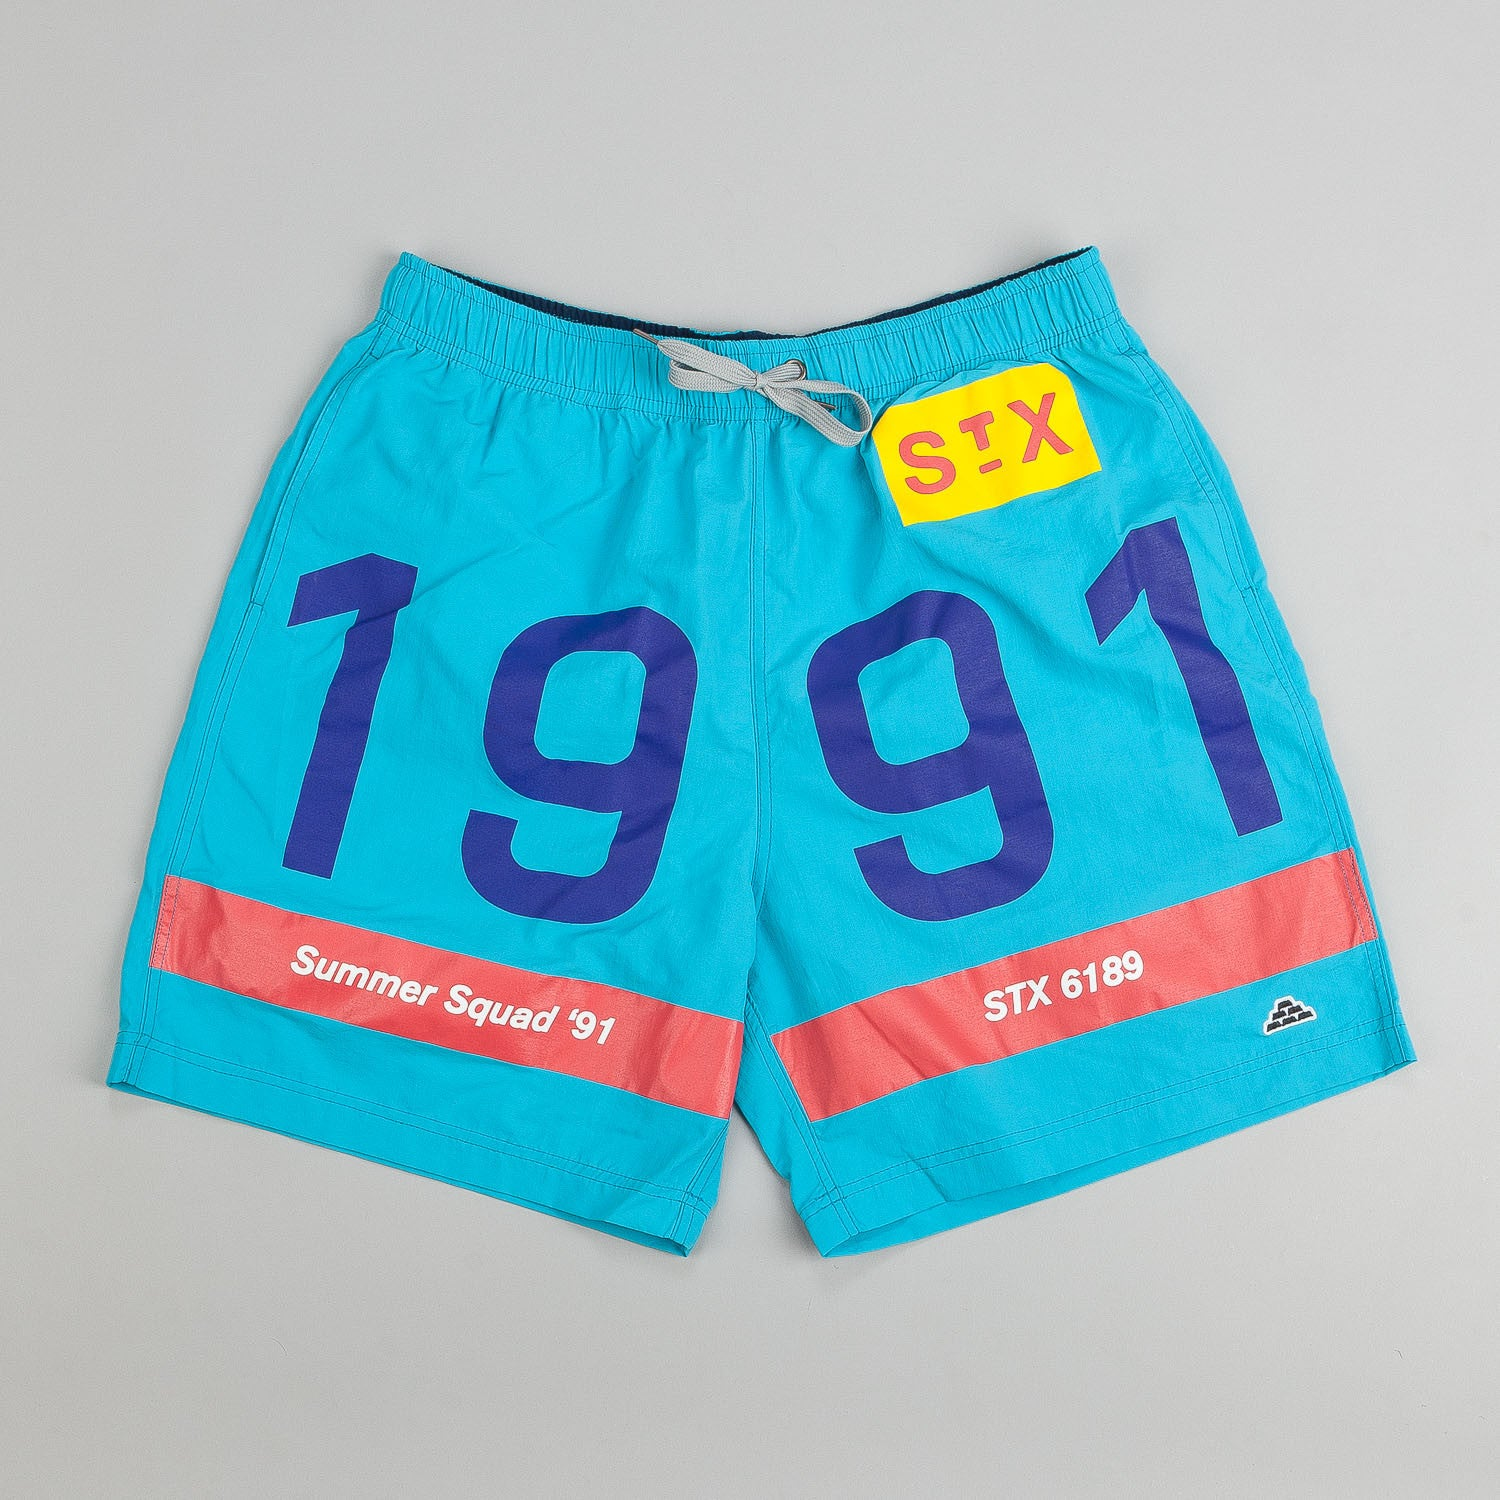 StreetX Polo Shorts